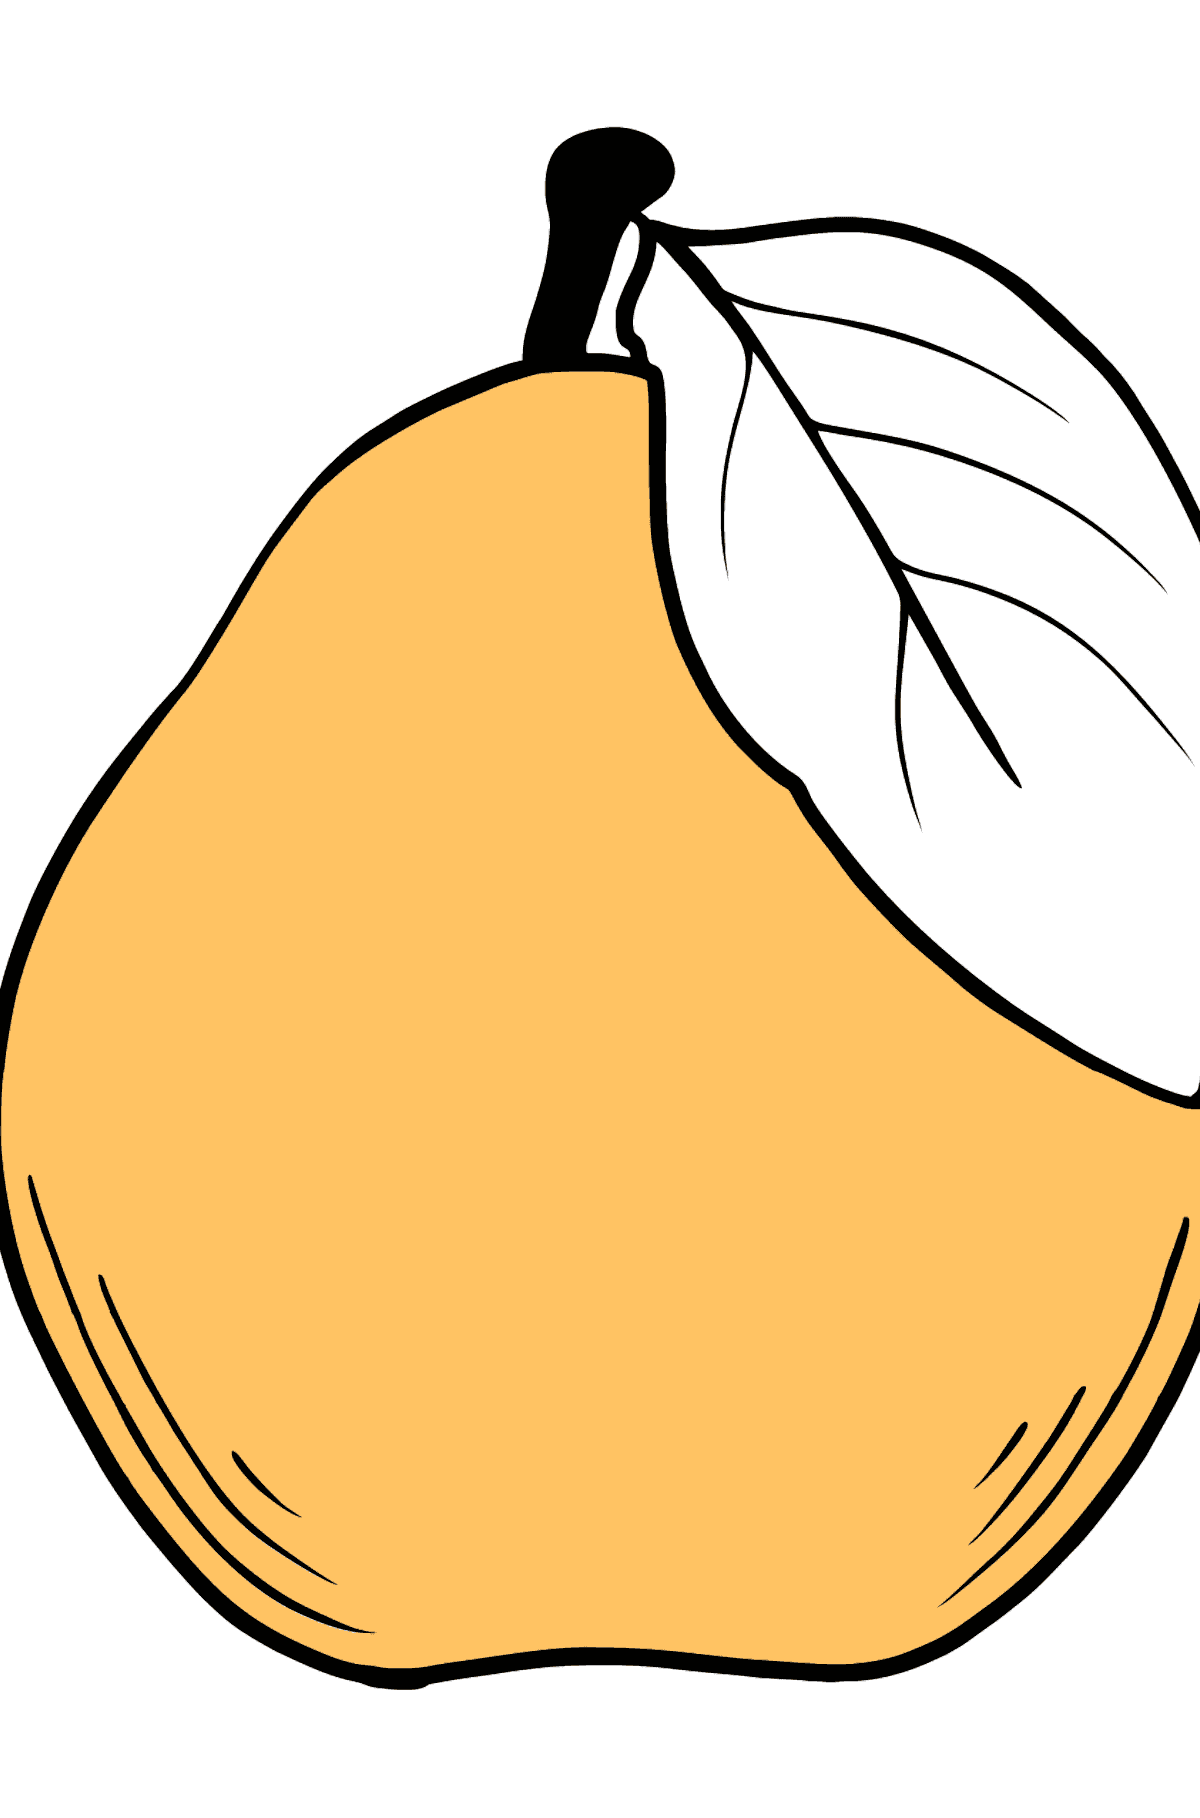 Coloring Pear - Coloring Pages for Kids